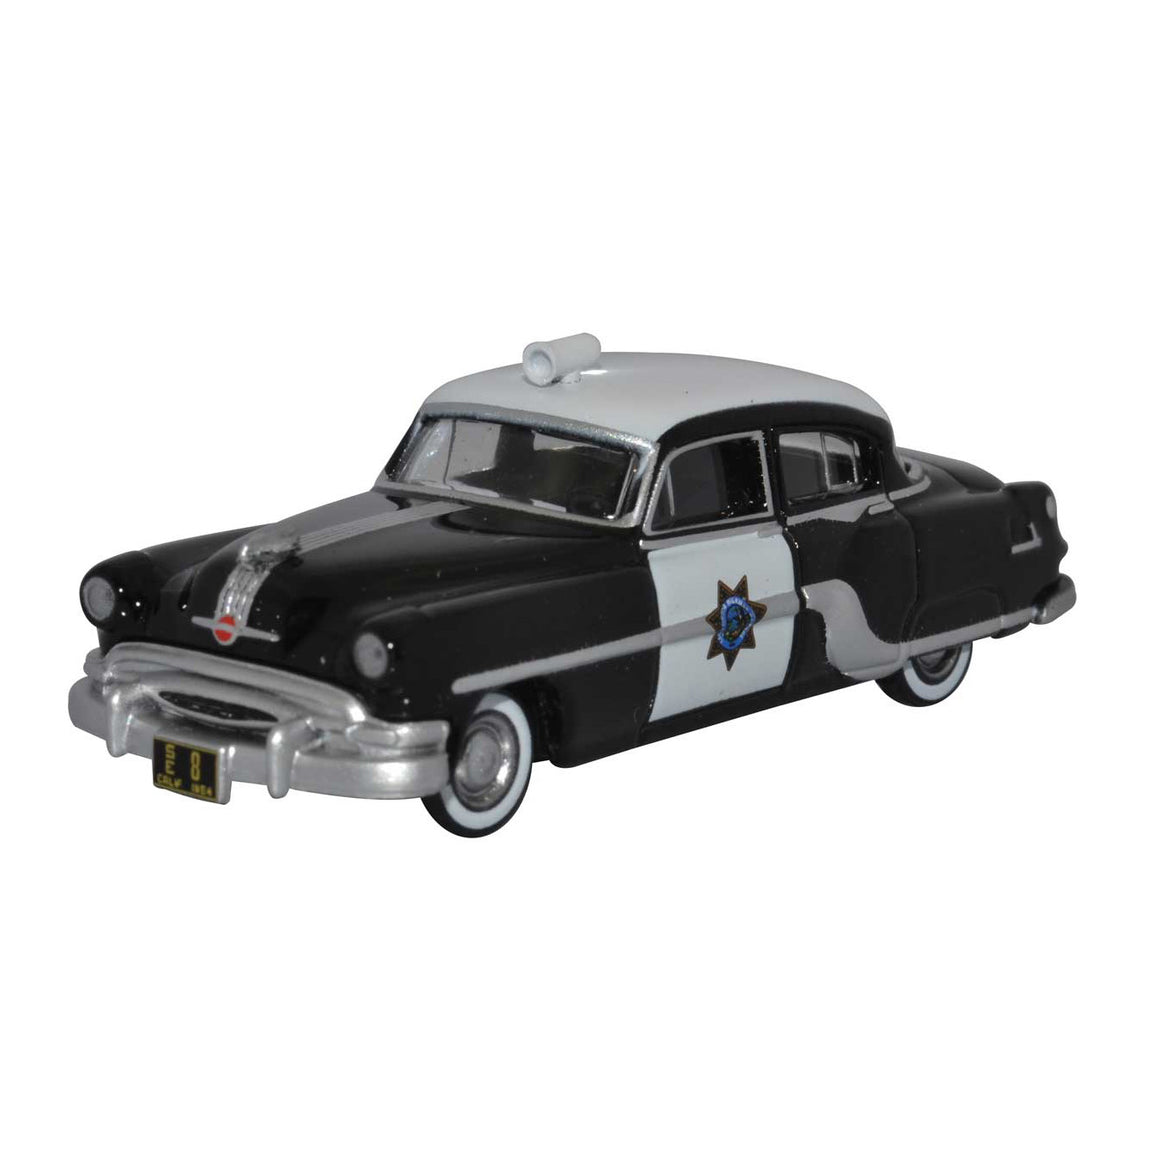 HO Scale: 1954 Pontiac Chieftain 4-Door Sedan - California Highway Patrol